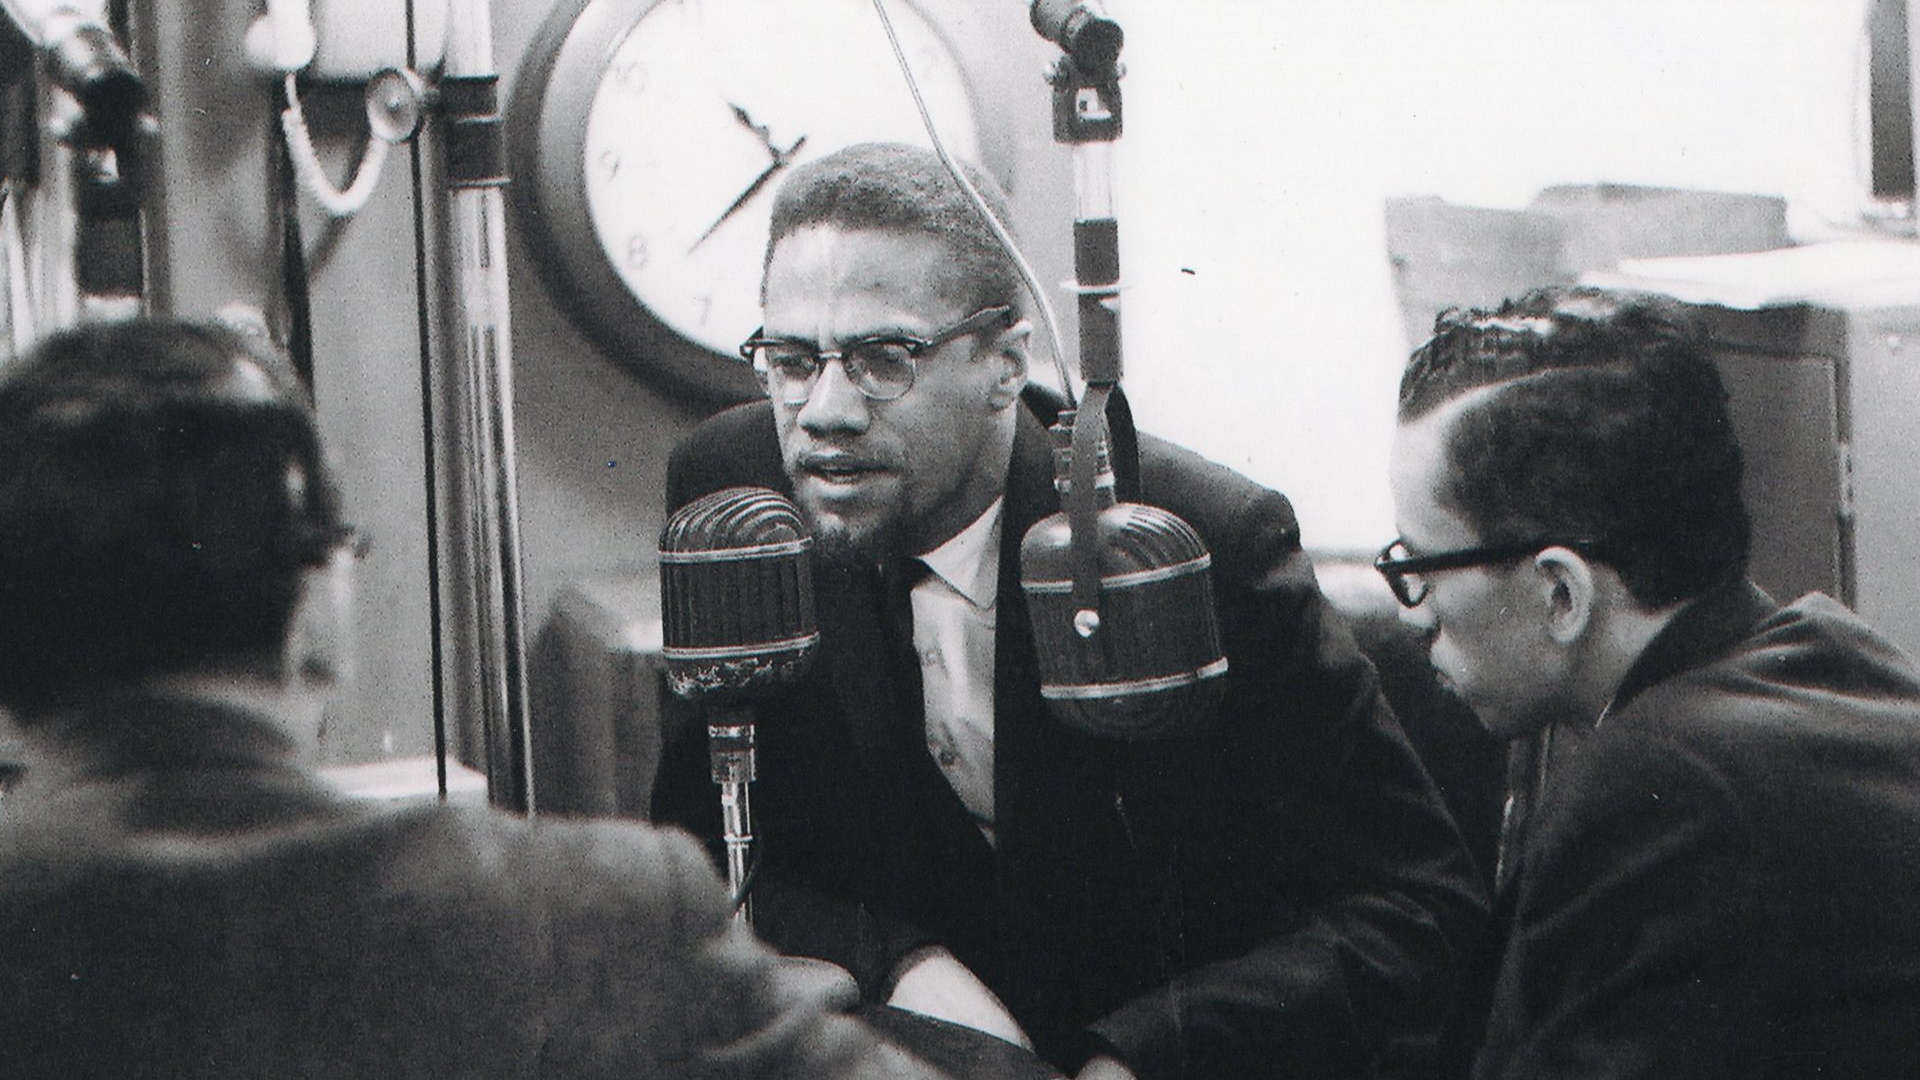 the life influences and racial equality activism of malcolm x How does malcolm x's understanding of racial identity change over the course of his life consider the different phases of malcolm's life during his life, malcolm has as many attitudes toward his identity as he has names, and he experiences a significant transformation over the course of the .